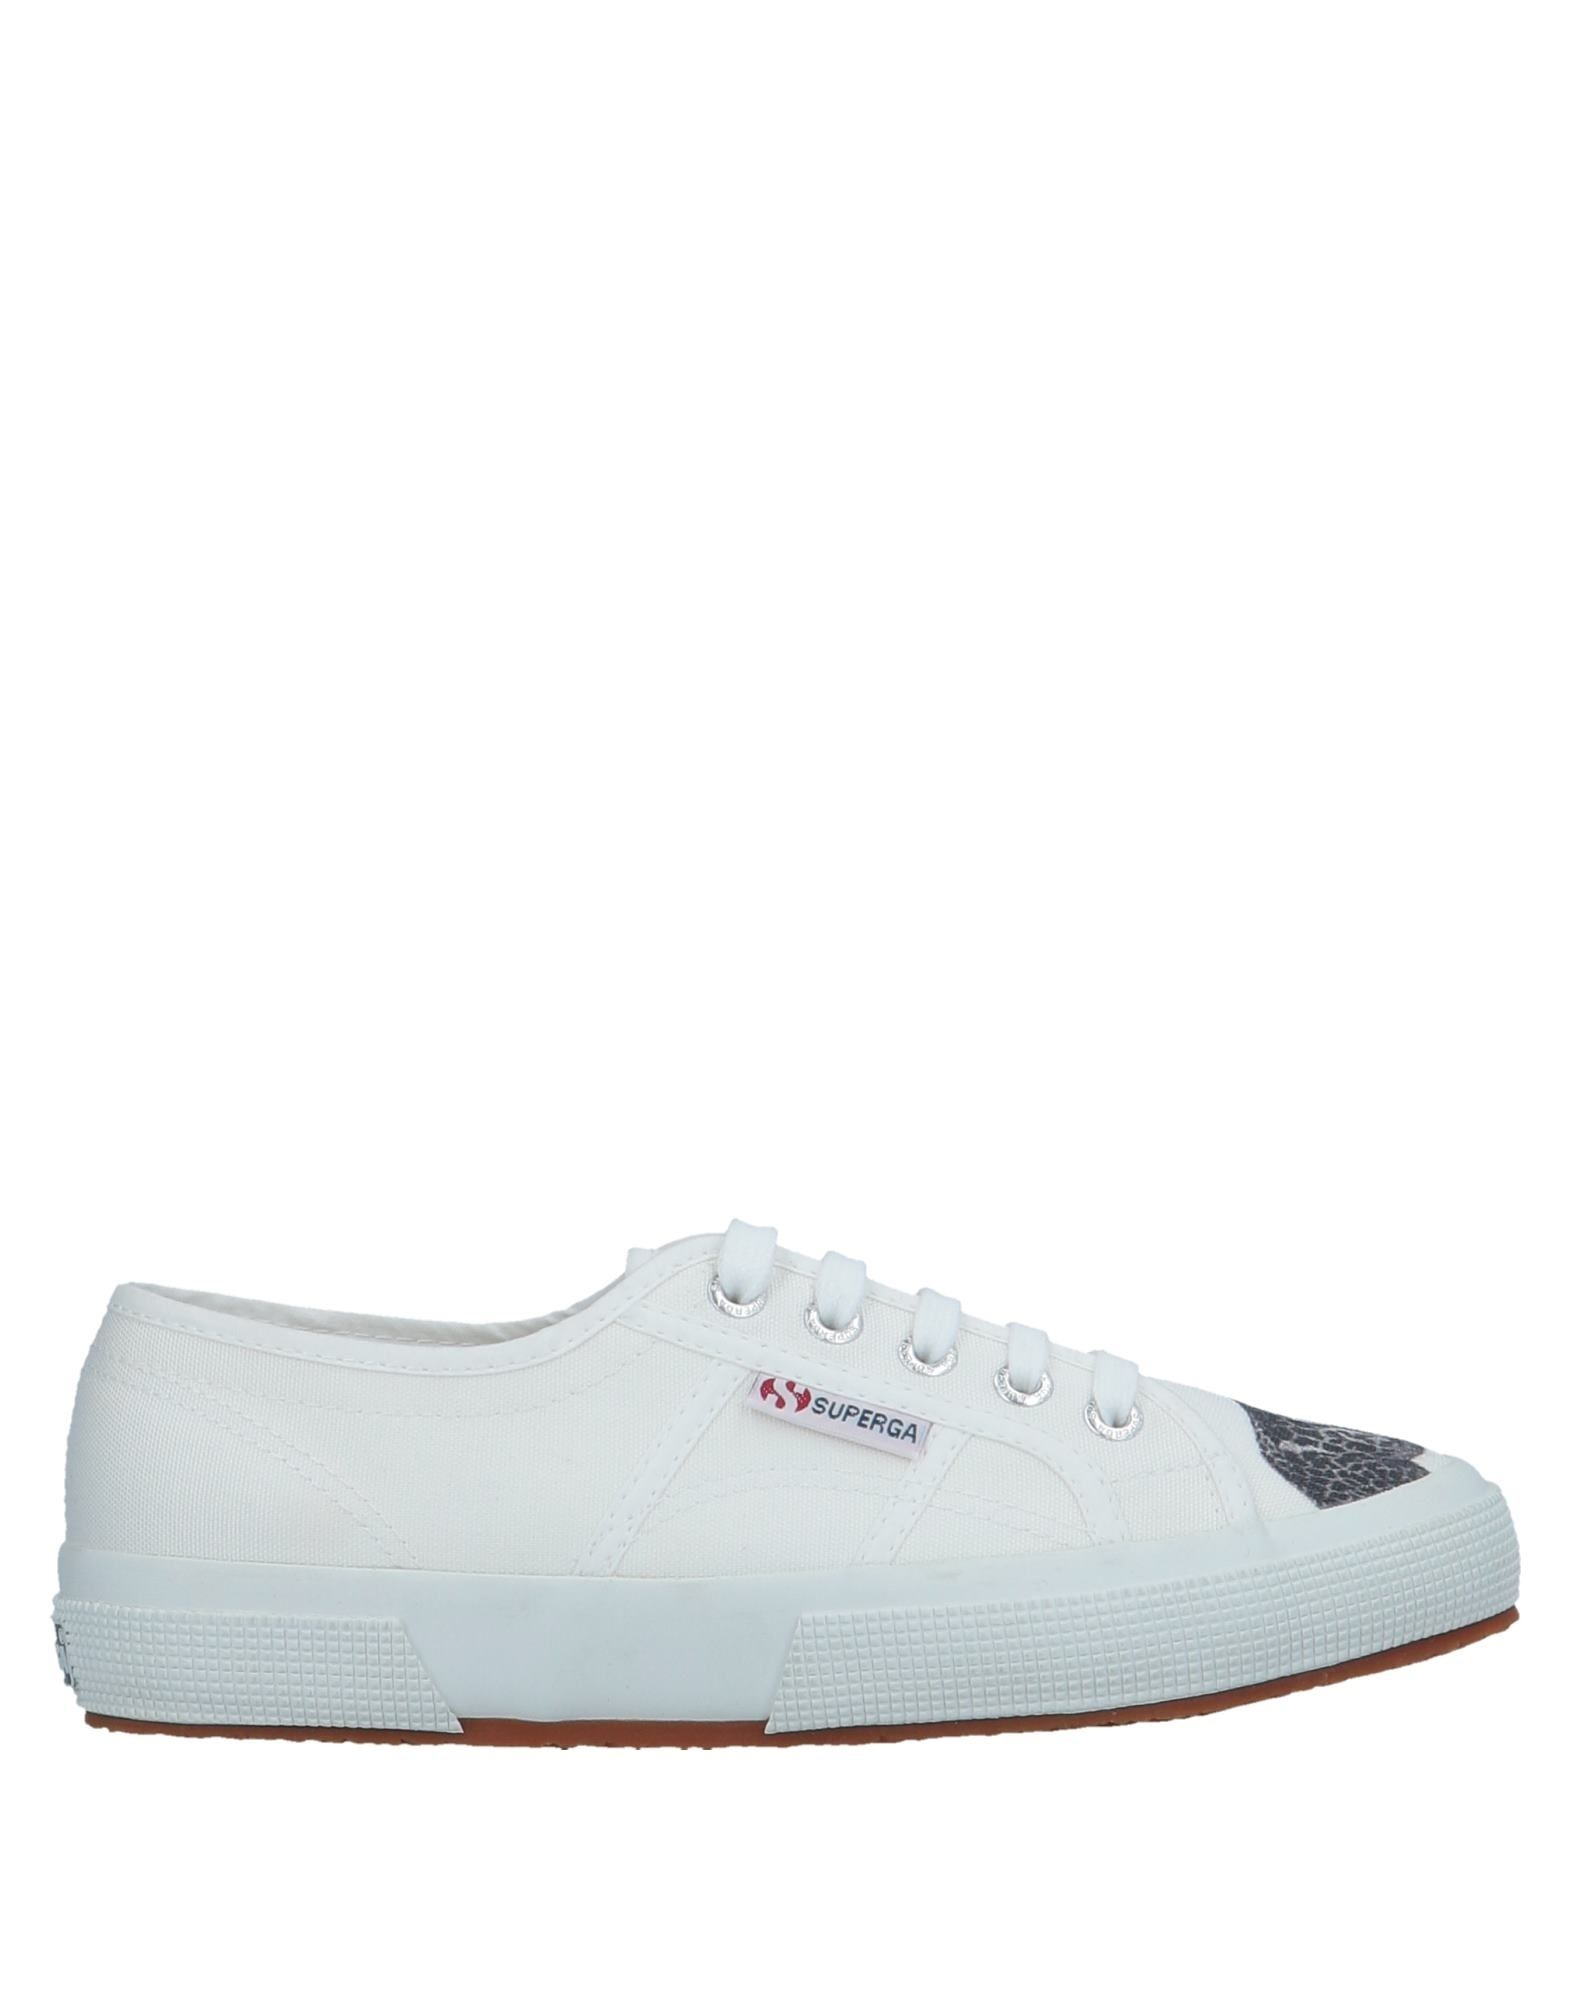 Superga® Sneakers United - Women Superga® Sneakers online on  United Sneakers Kingdom - 11570906EG a453d3